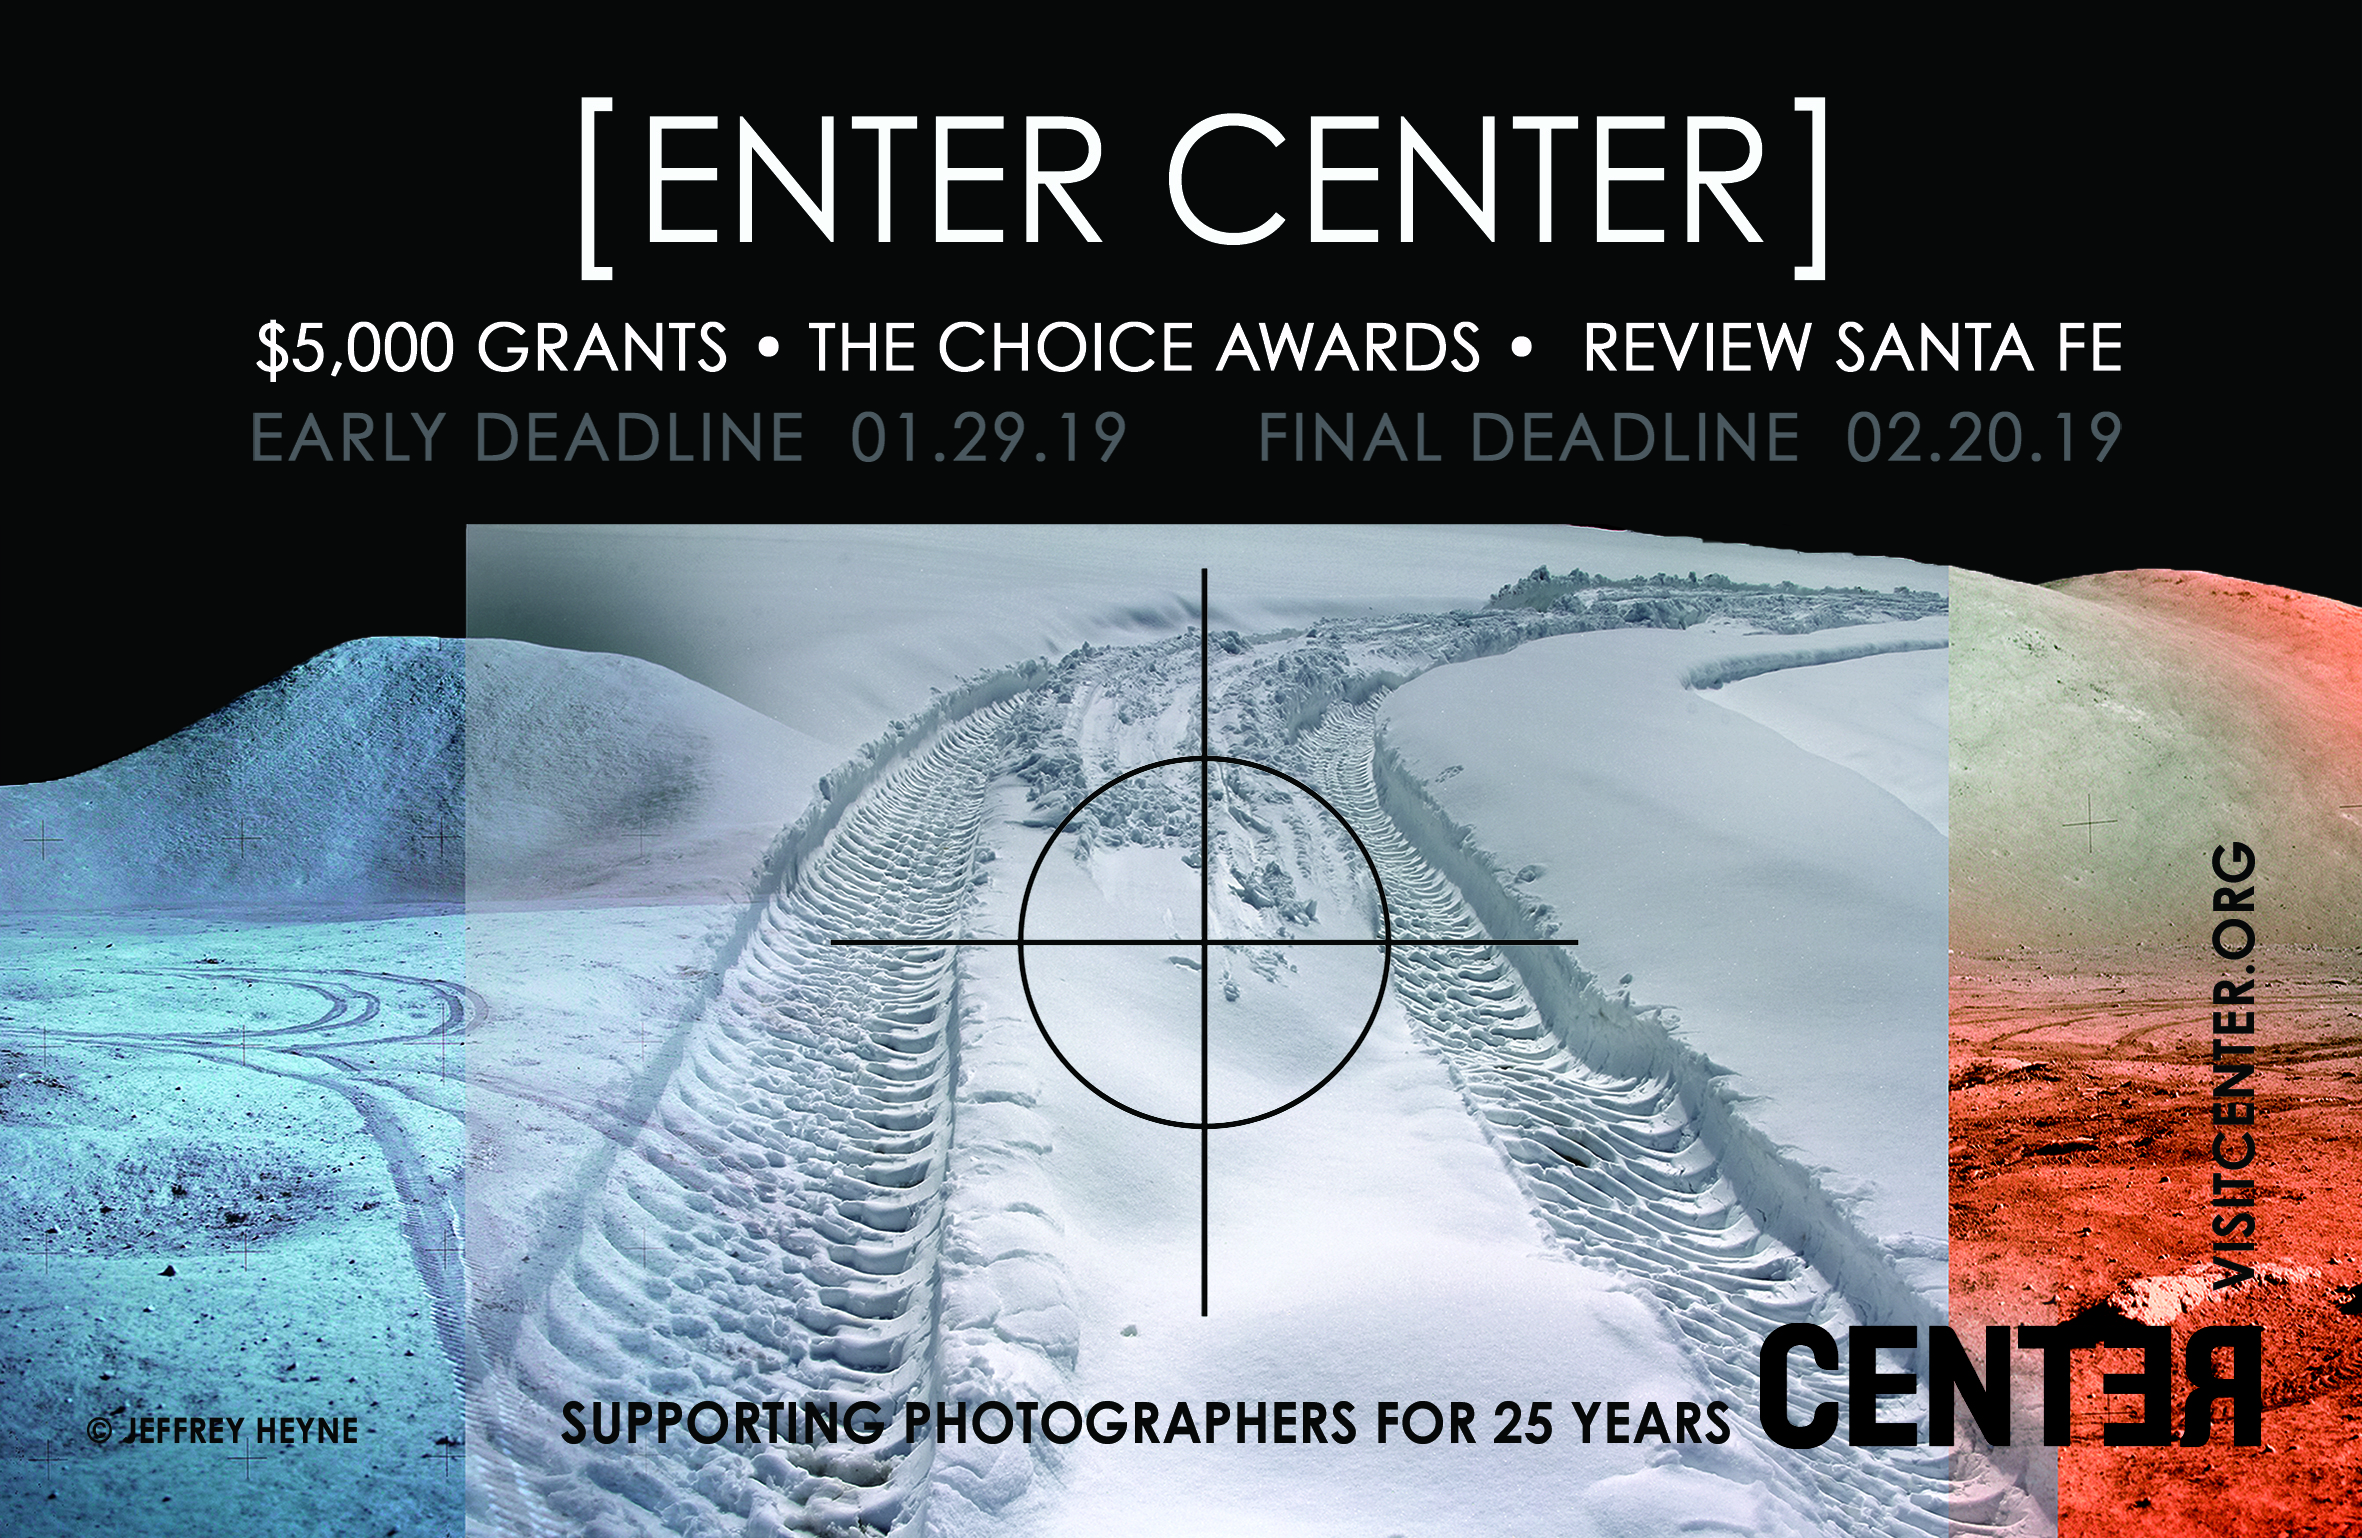 CENTERS 2019 Calls for Entry – Excellence in Multimedia Award